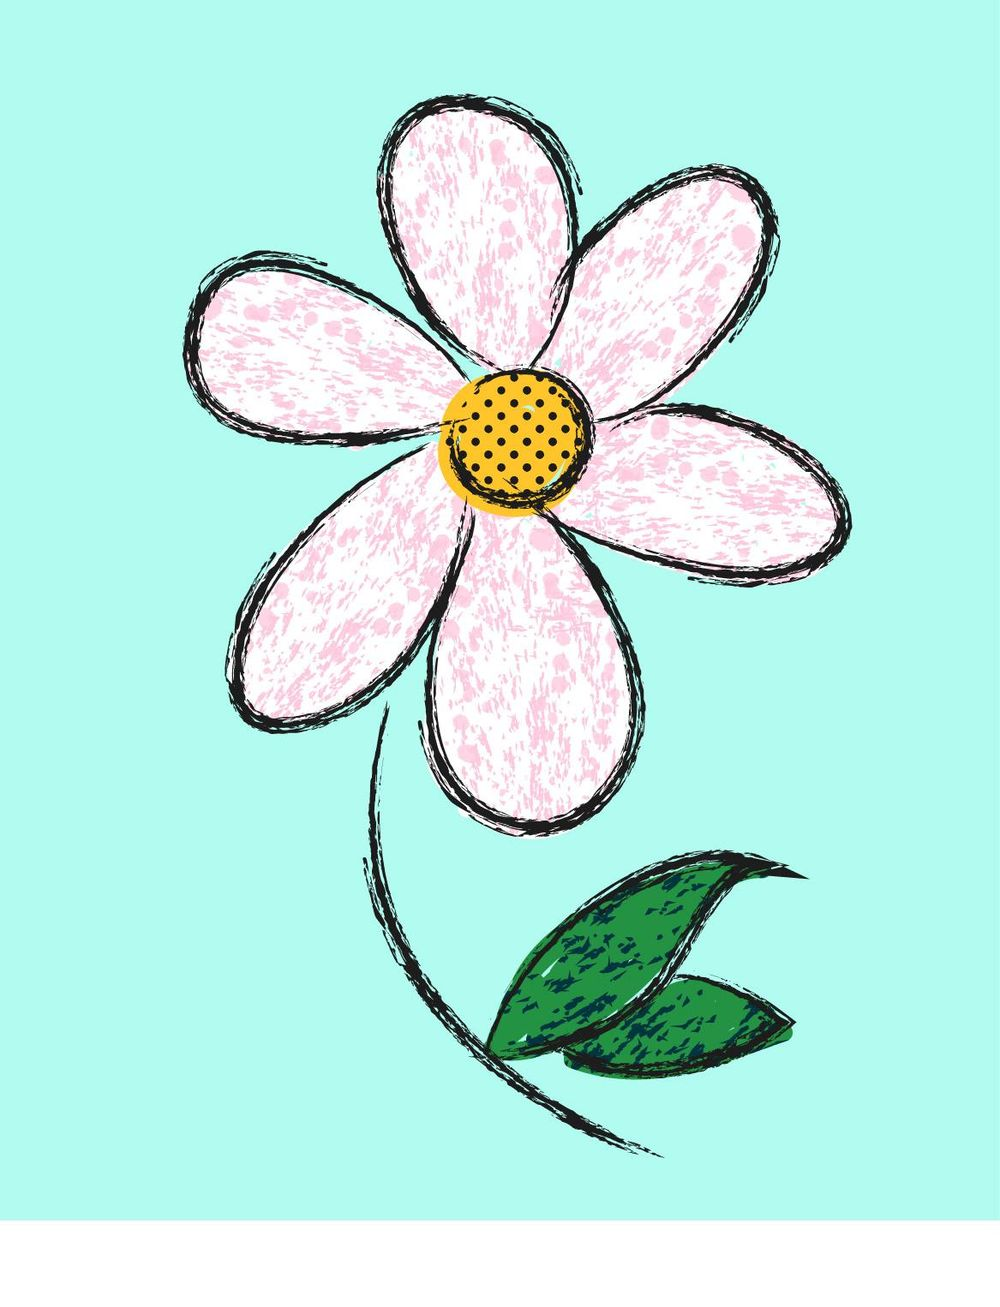 White Flower - image 1 - student project